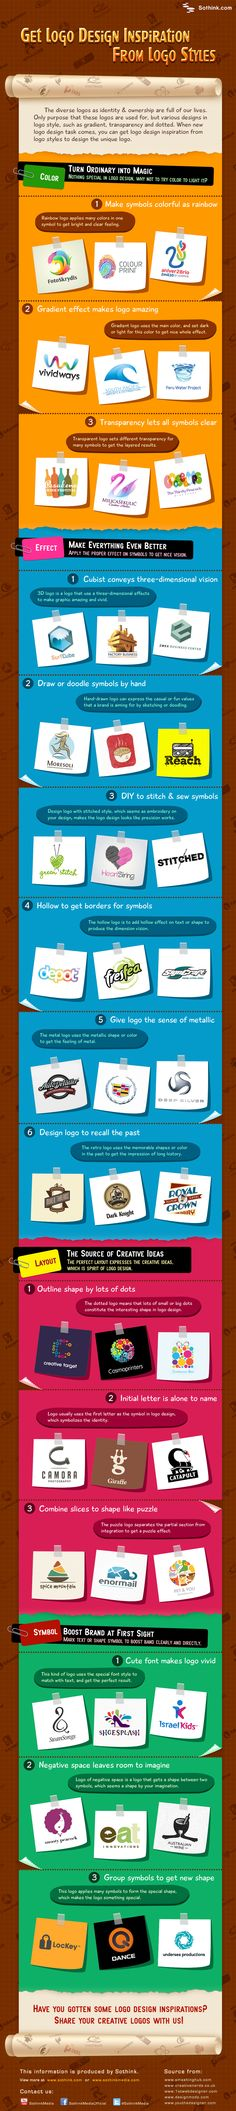 Get logo design inspiration from logo styles #infographic